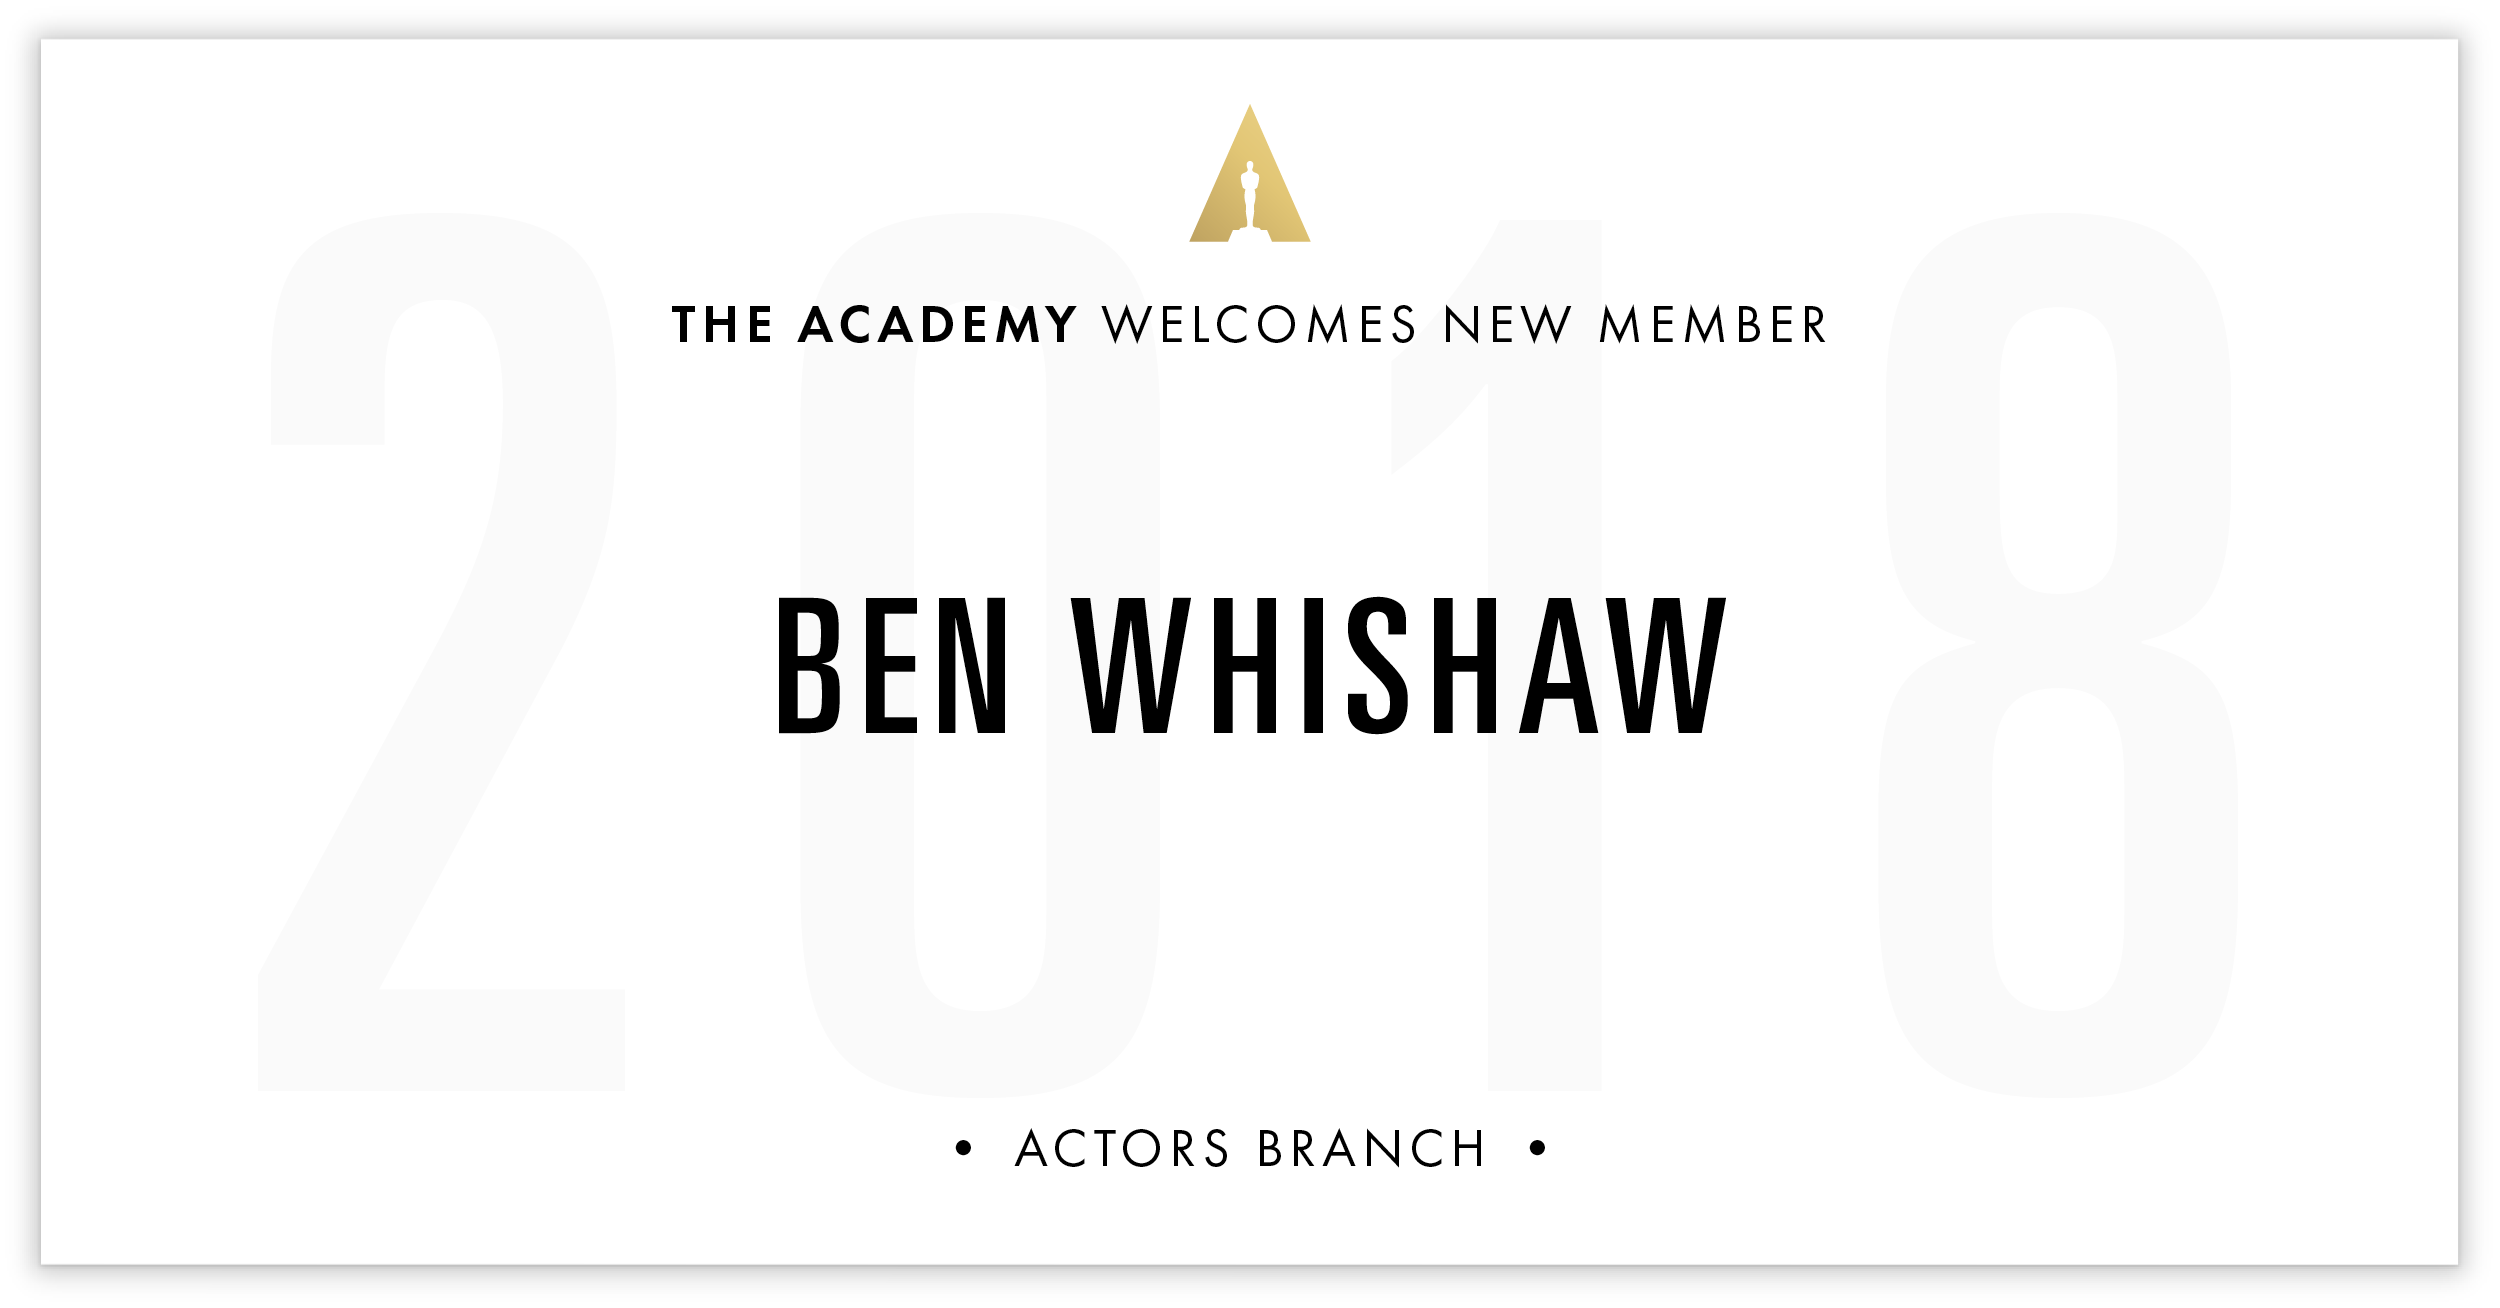 Ben Whishaw is invited!